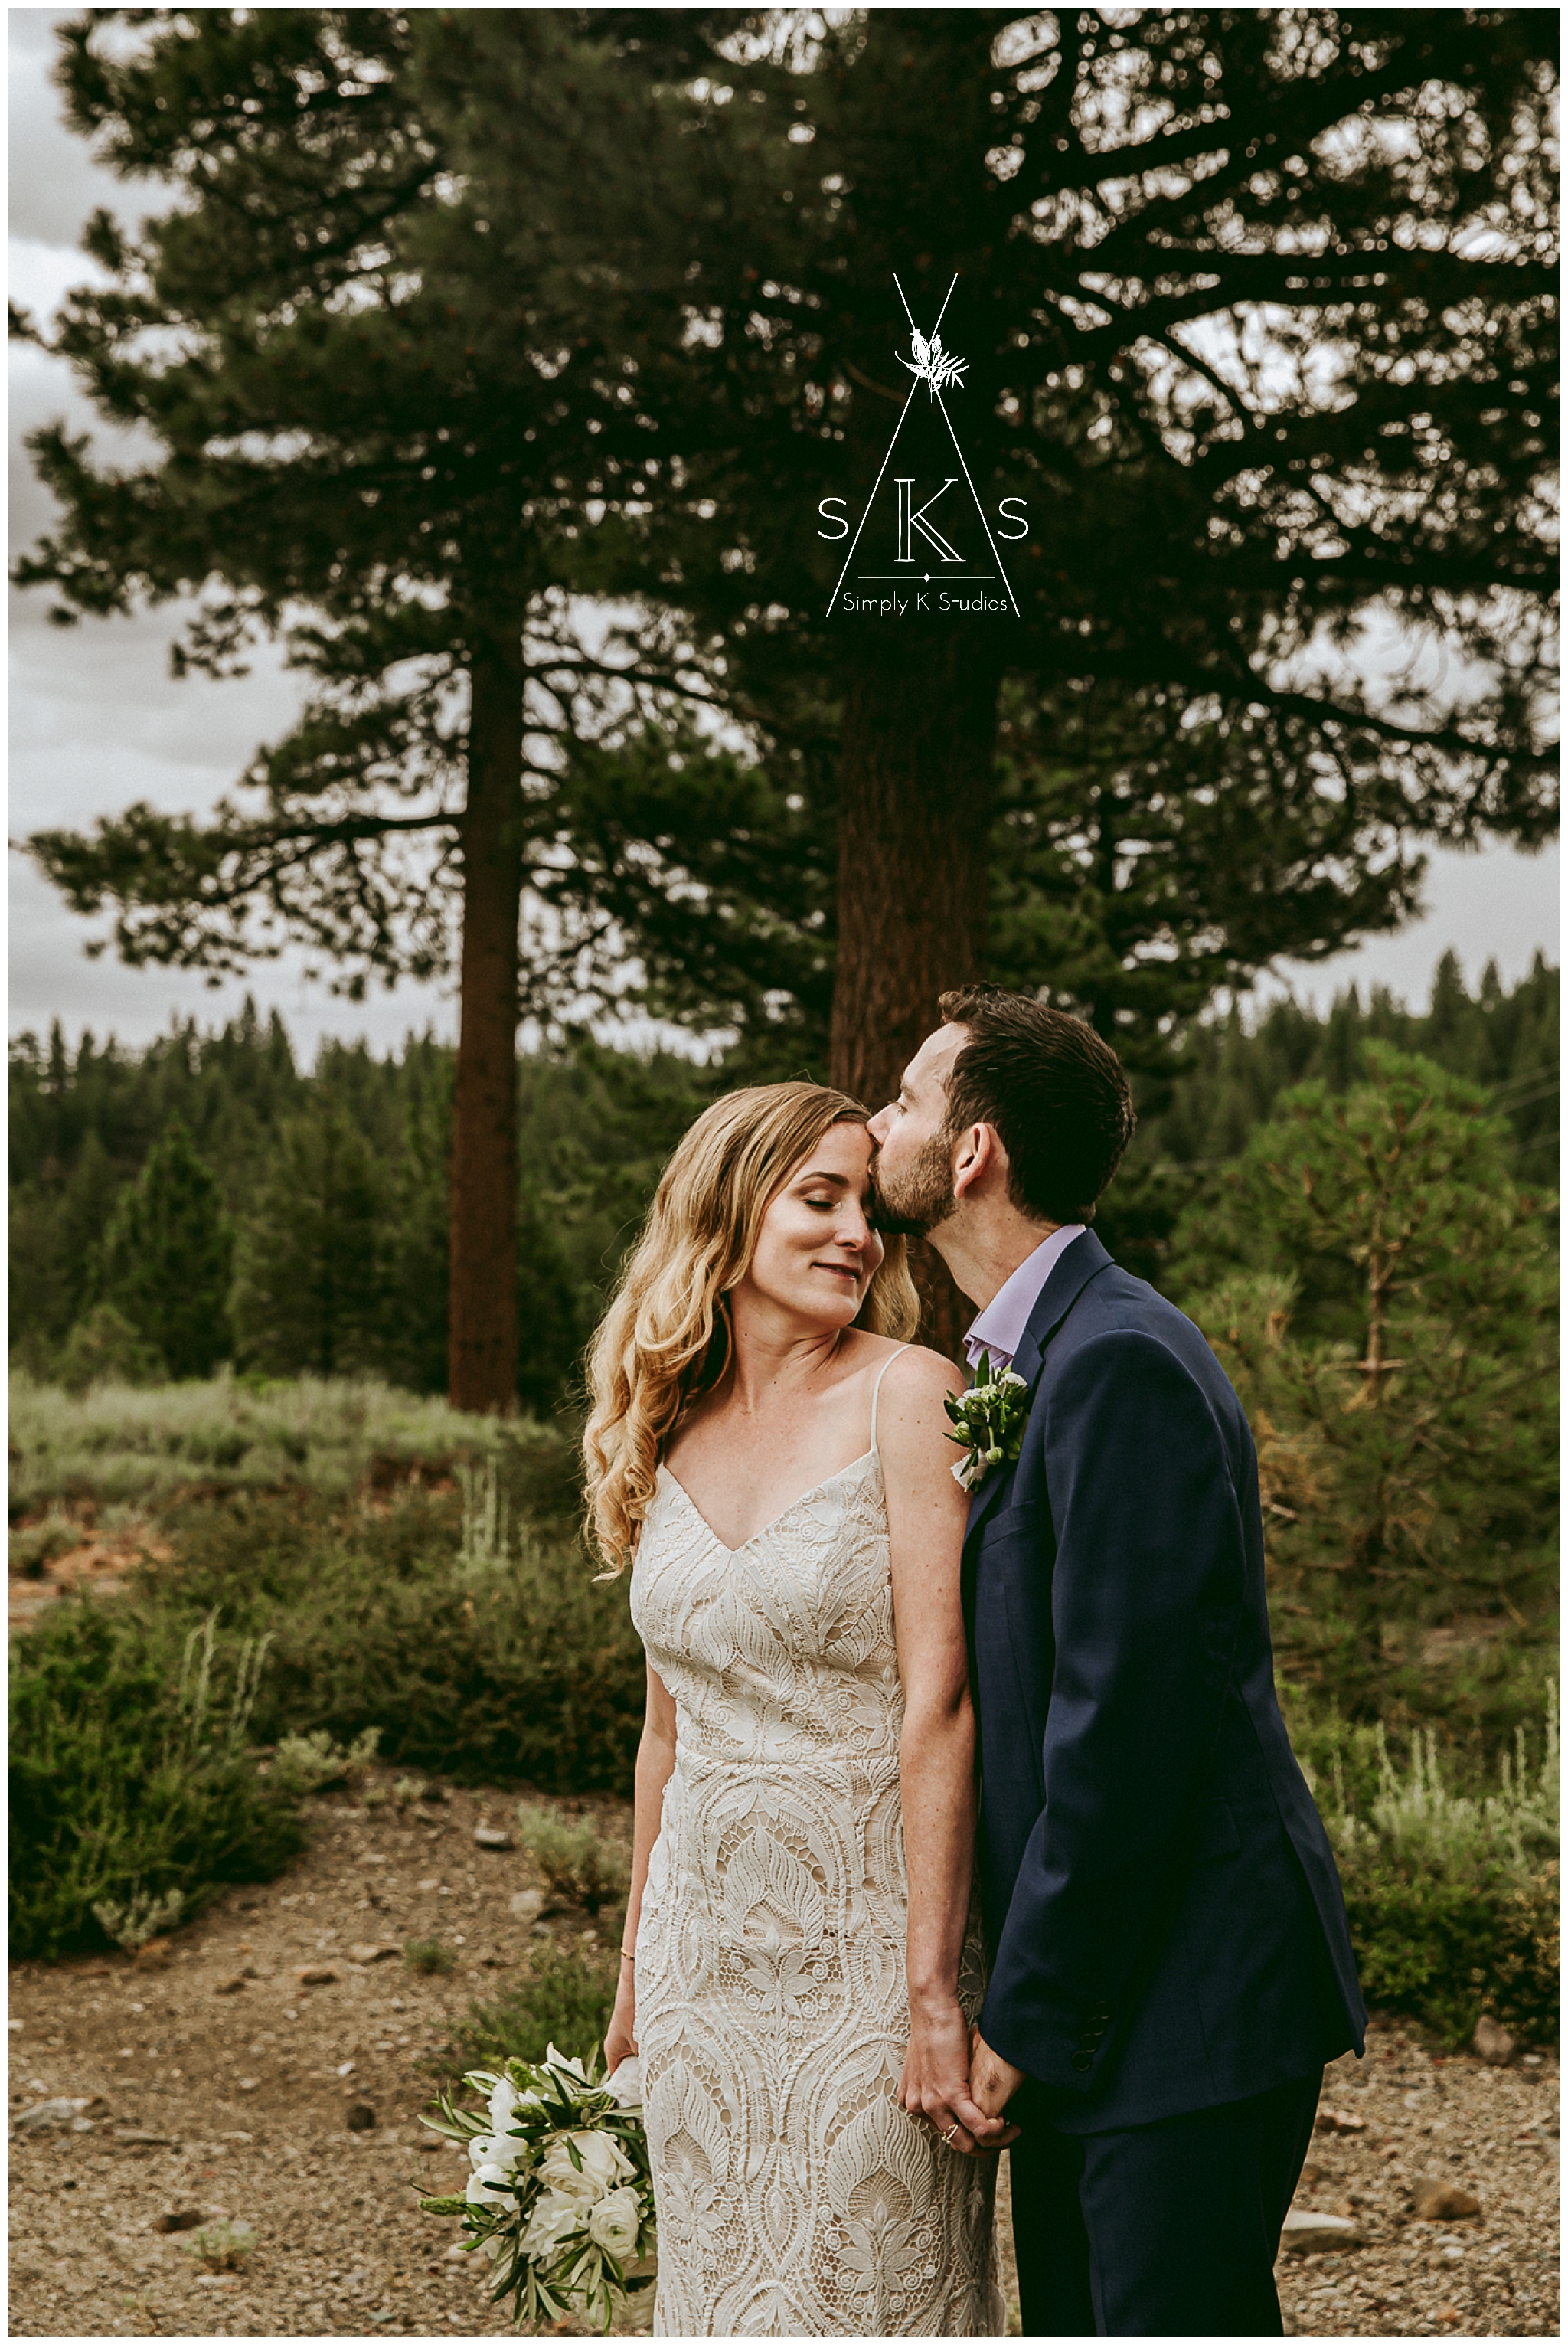 94 Wedding Photos at Tannenbaum Alpine Events Reno NV.jpg